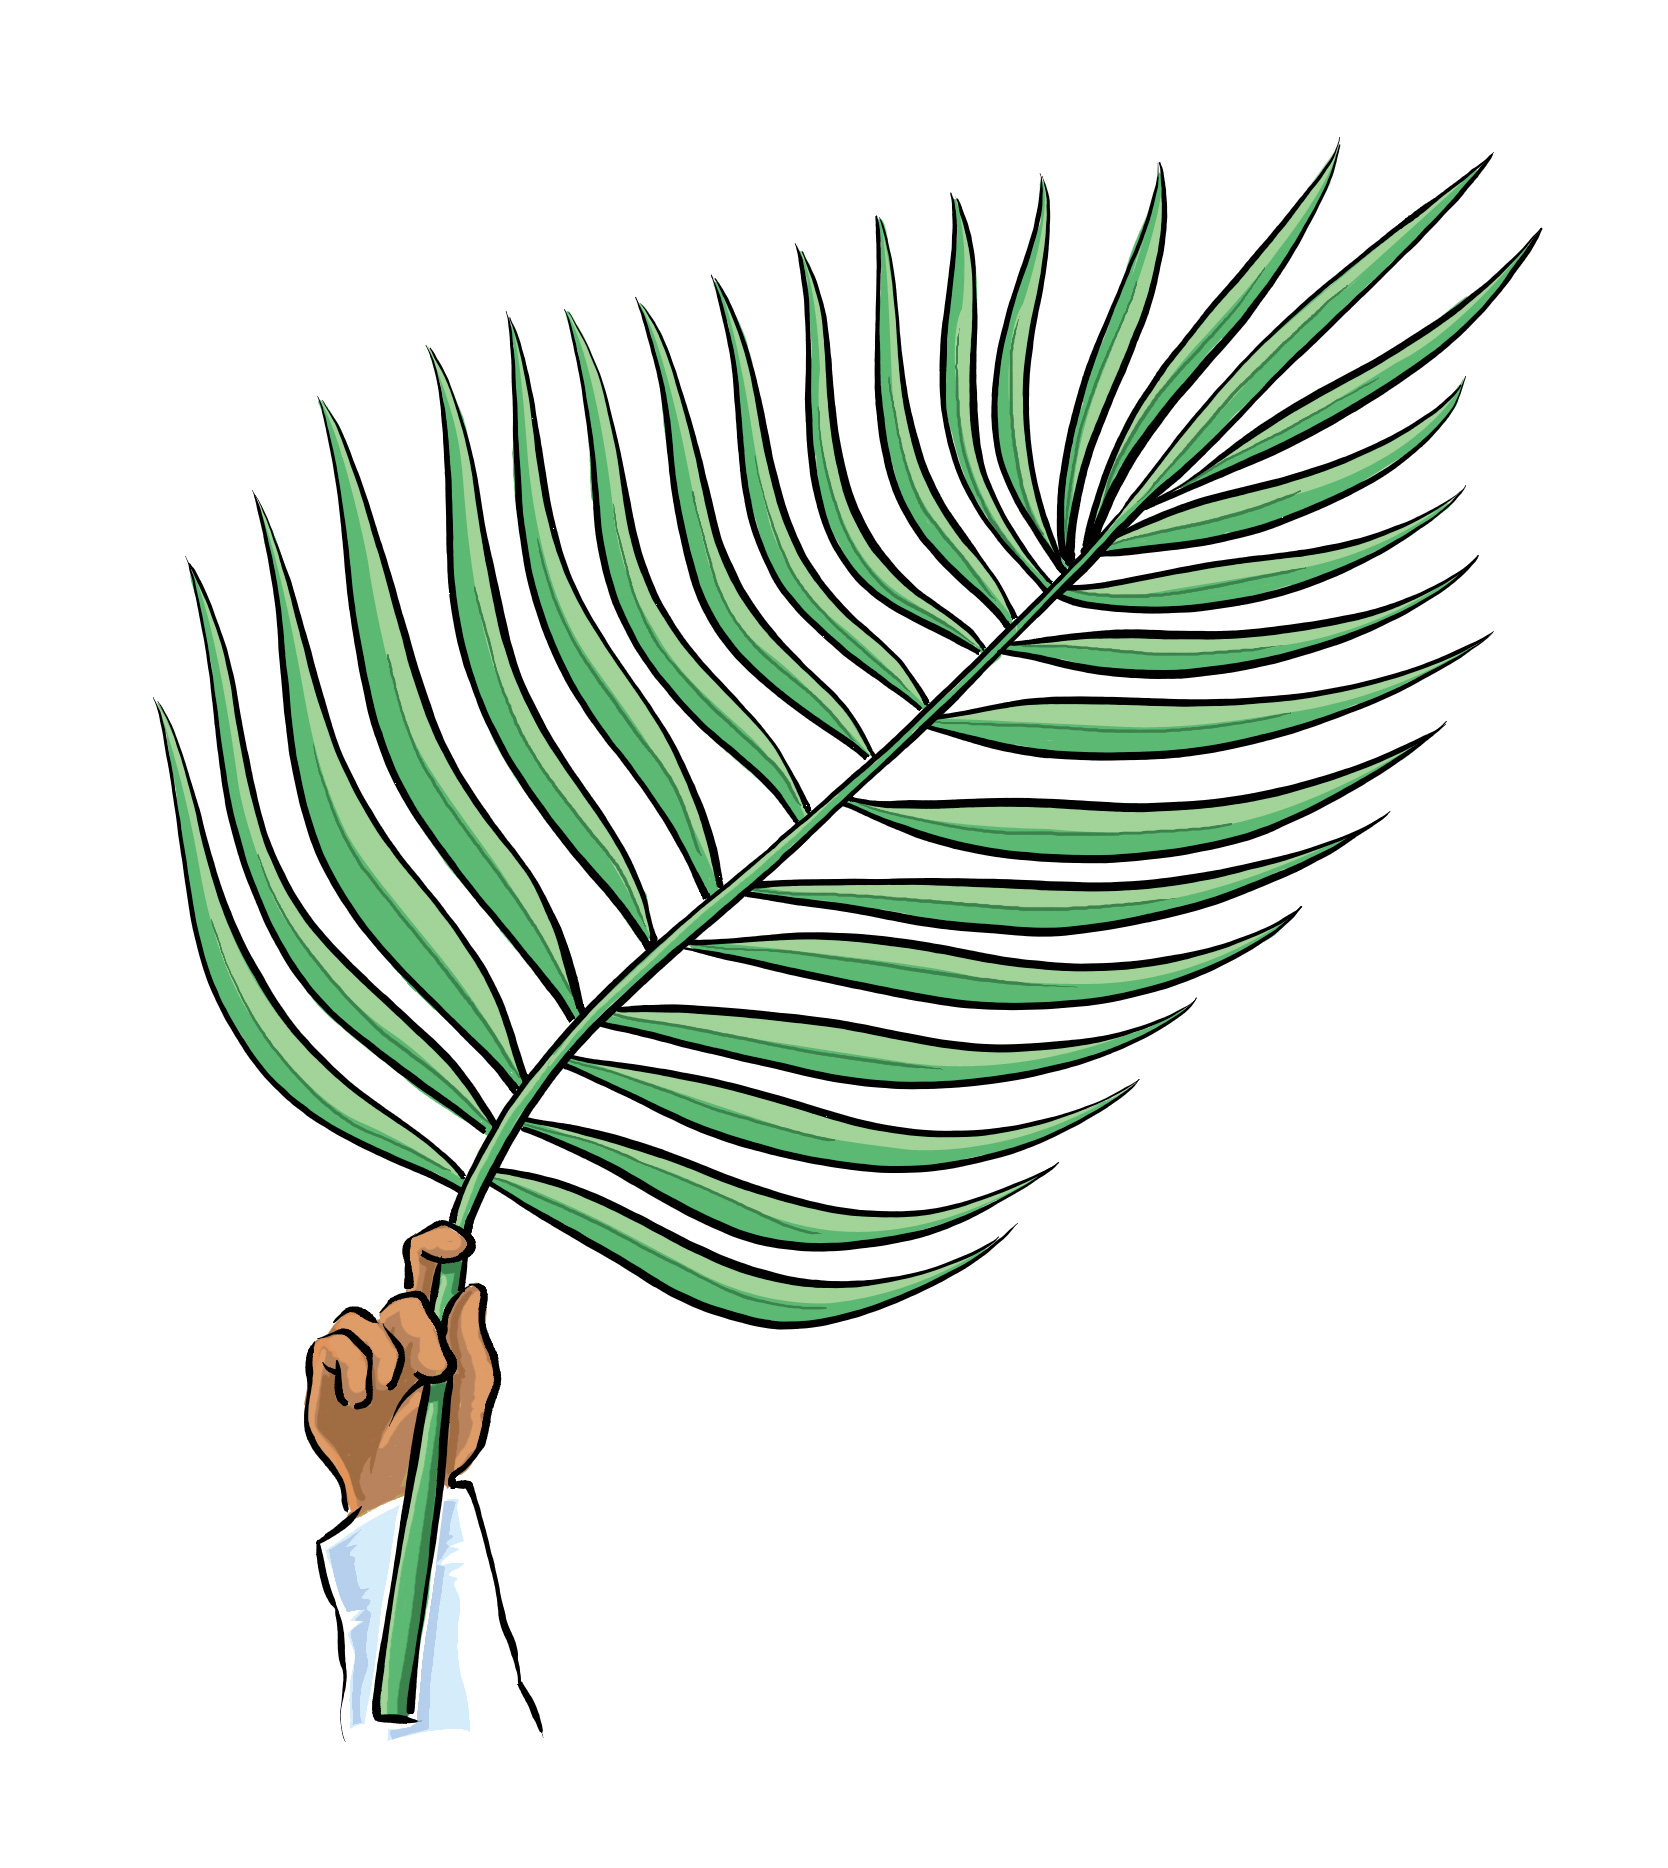 Free clipart for palm sunday png black and white stock Palm Sunday Clip Art Images | Clipart Panda - Free Clipart Images png black and white stock